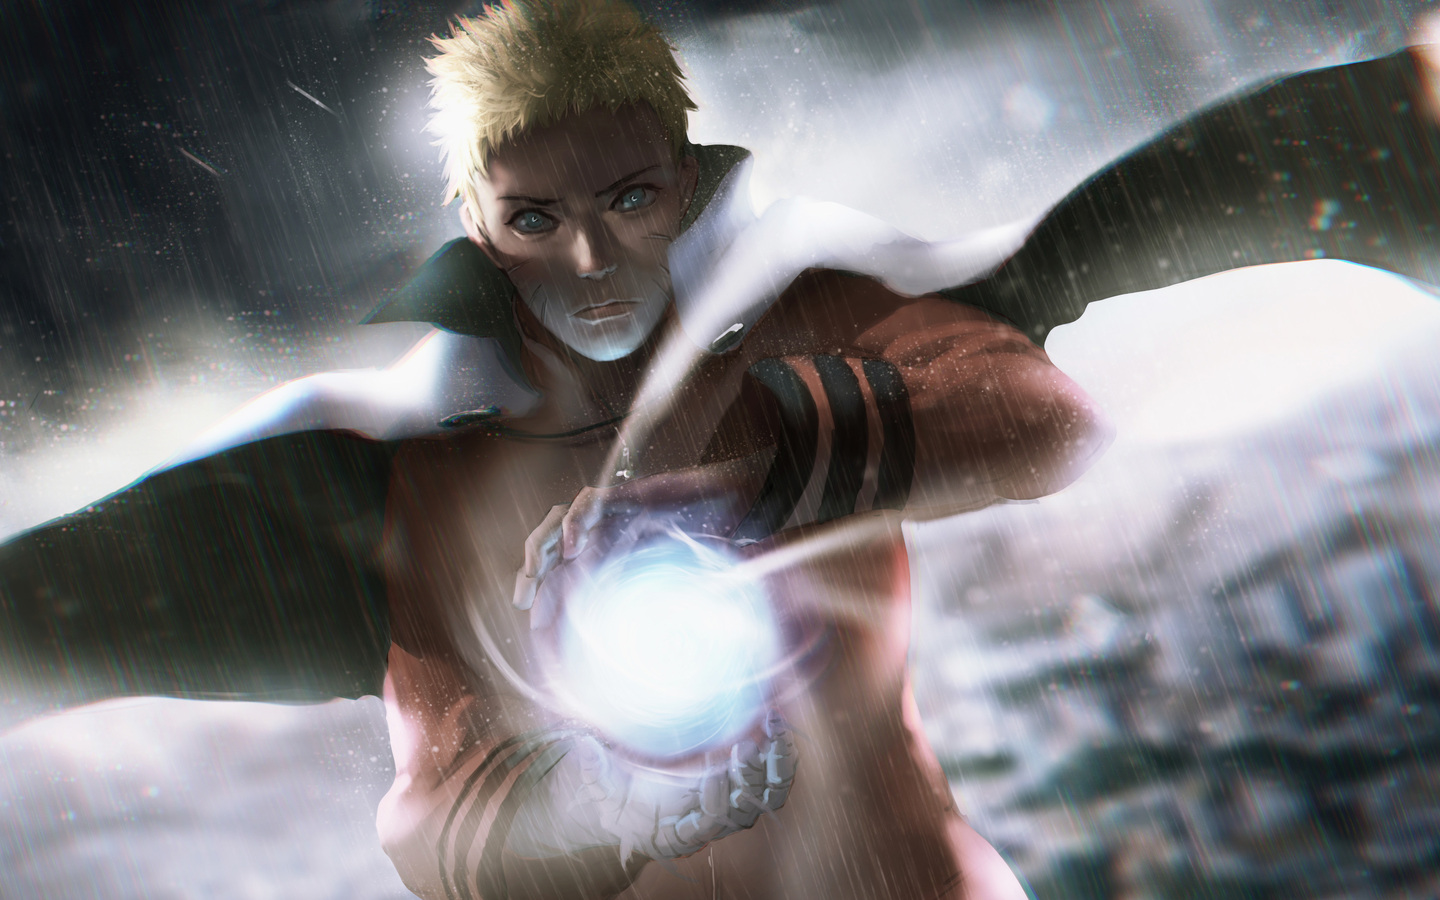 1440x900 Naruto Uzumaki 4k 1440x900 Resolution Hd 4k Wallpapers Images Backgrounds Photos And Pictures